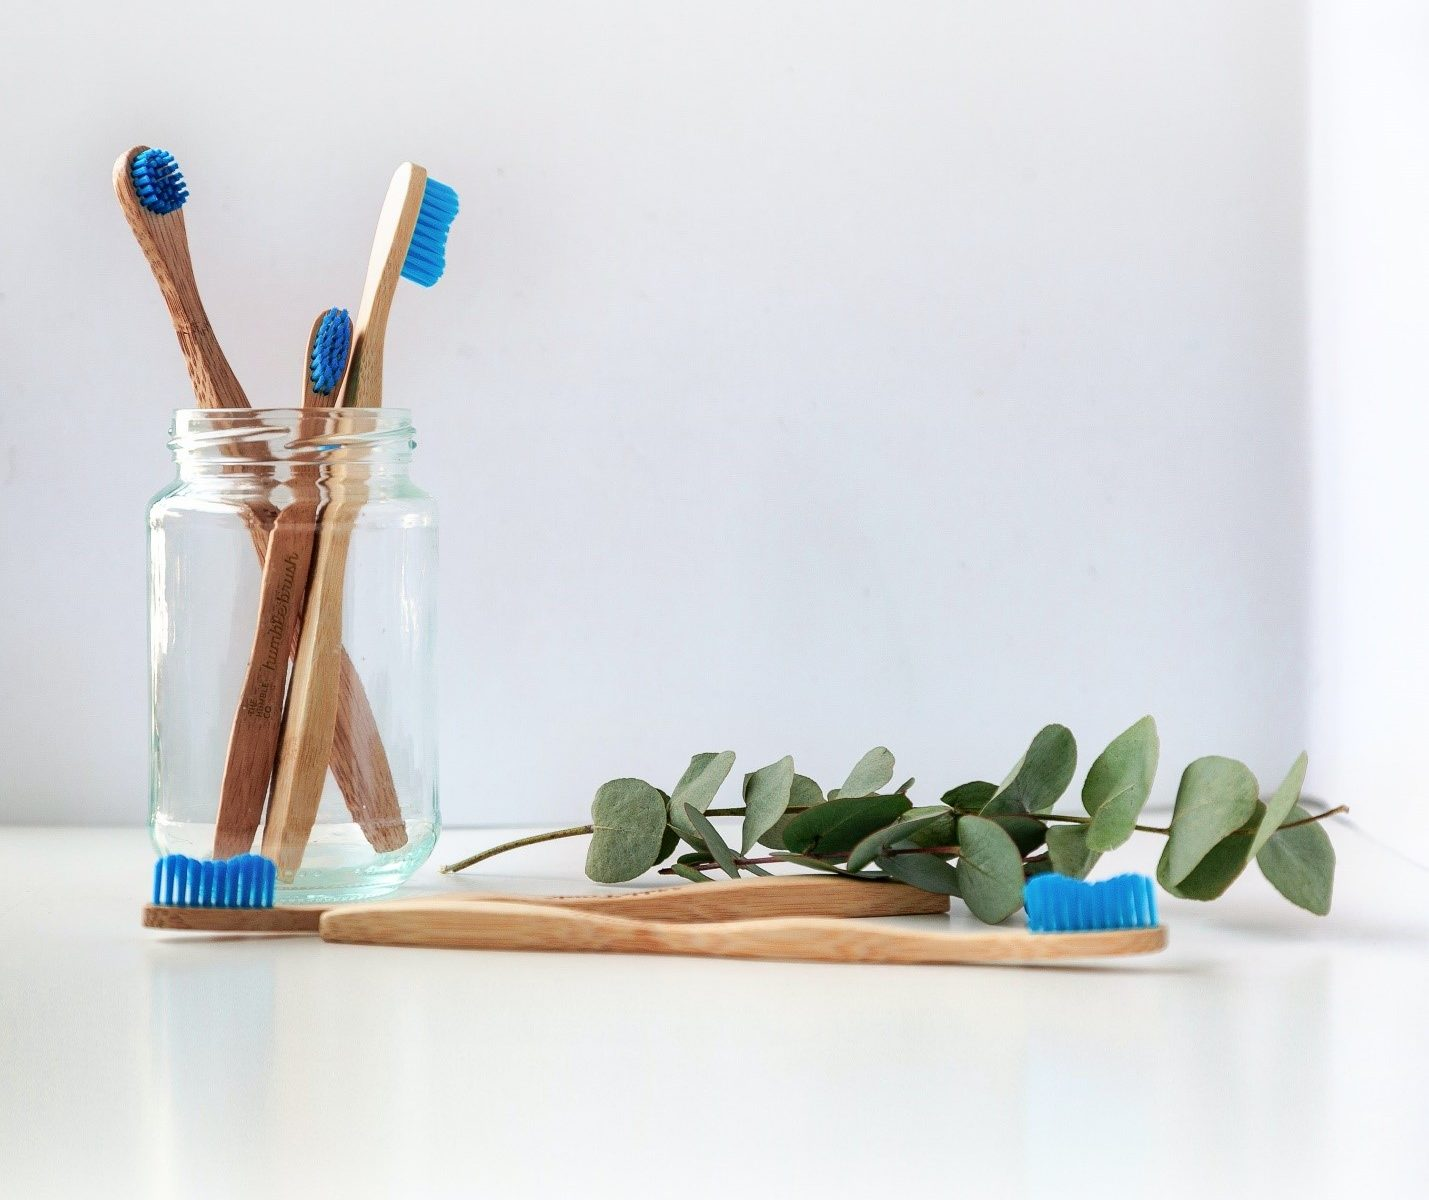 Several toothbrushes placed in a jar and table